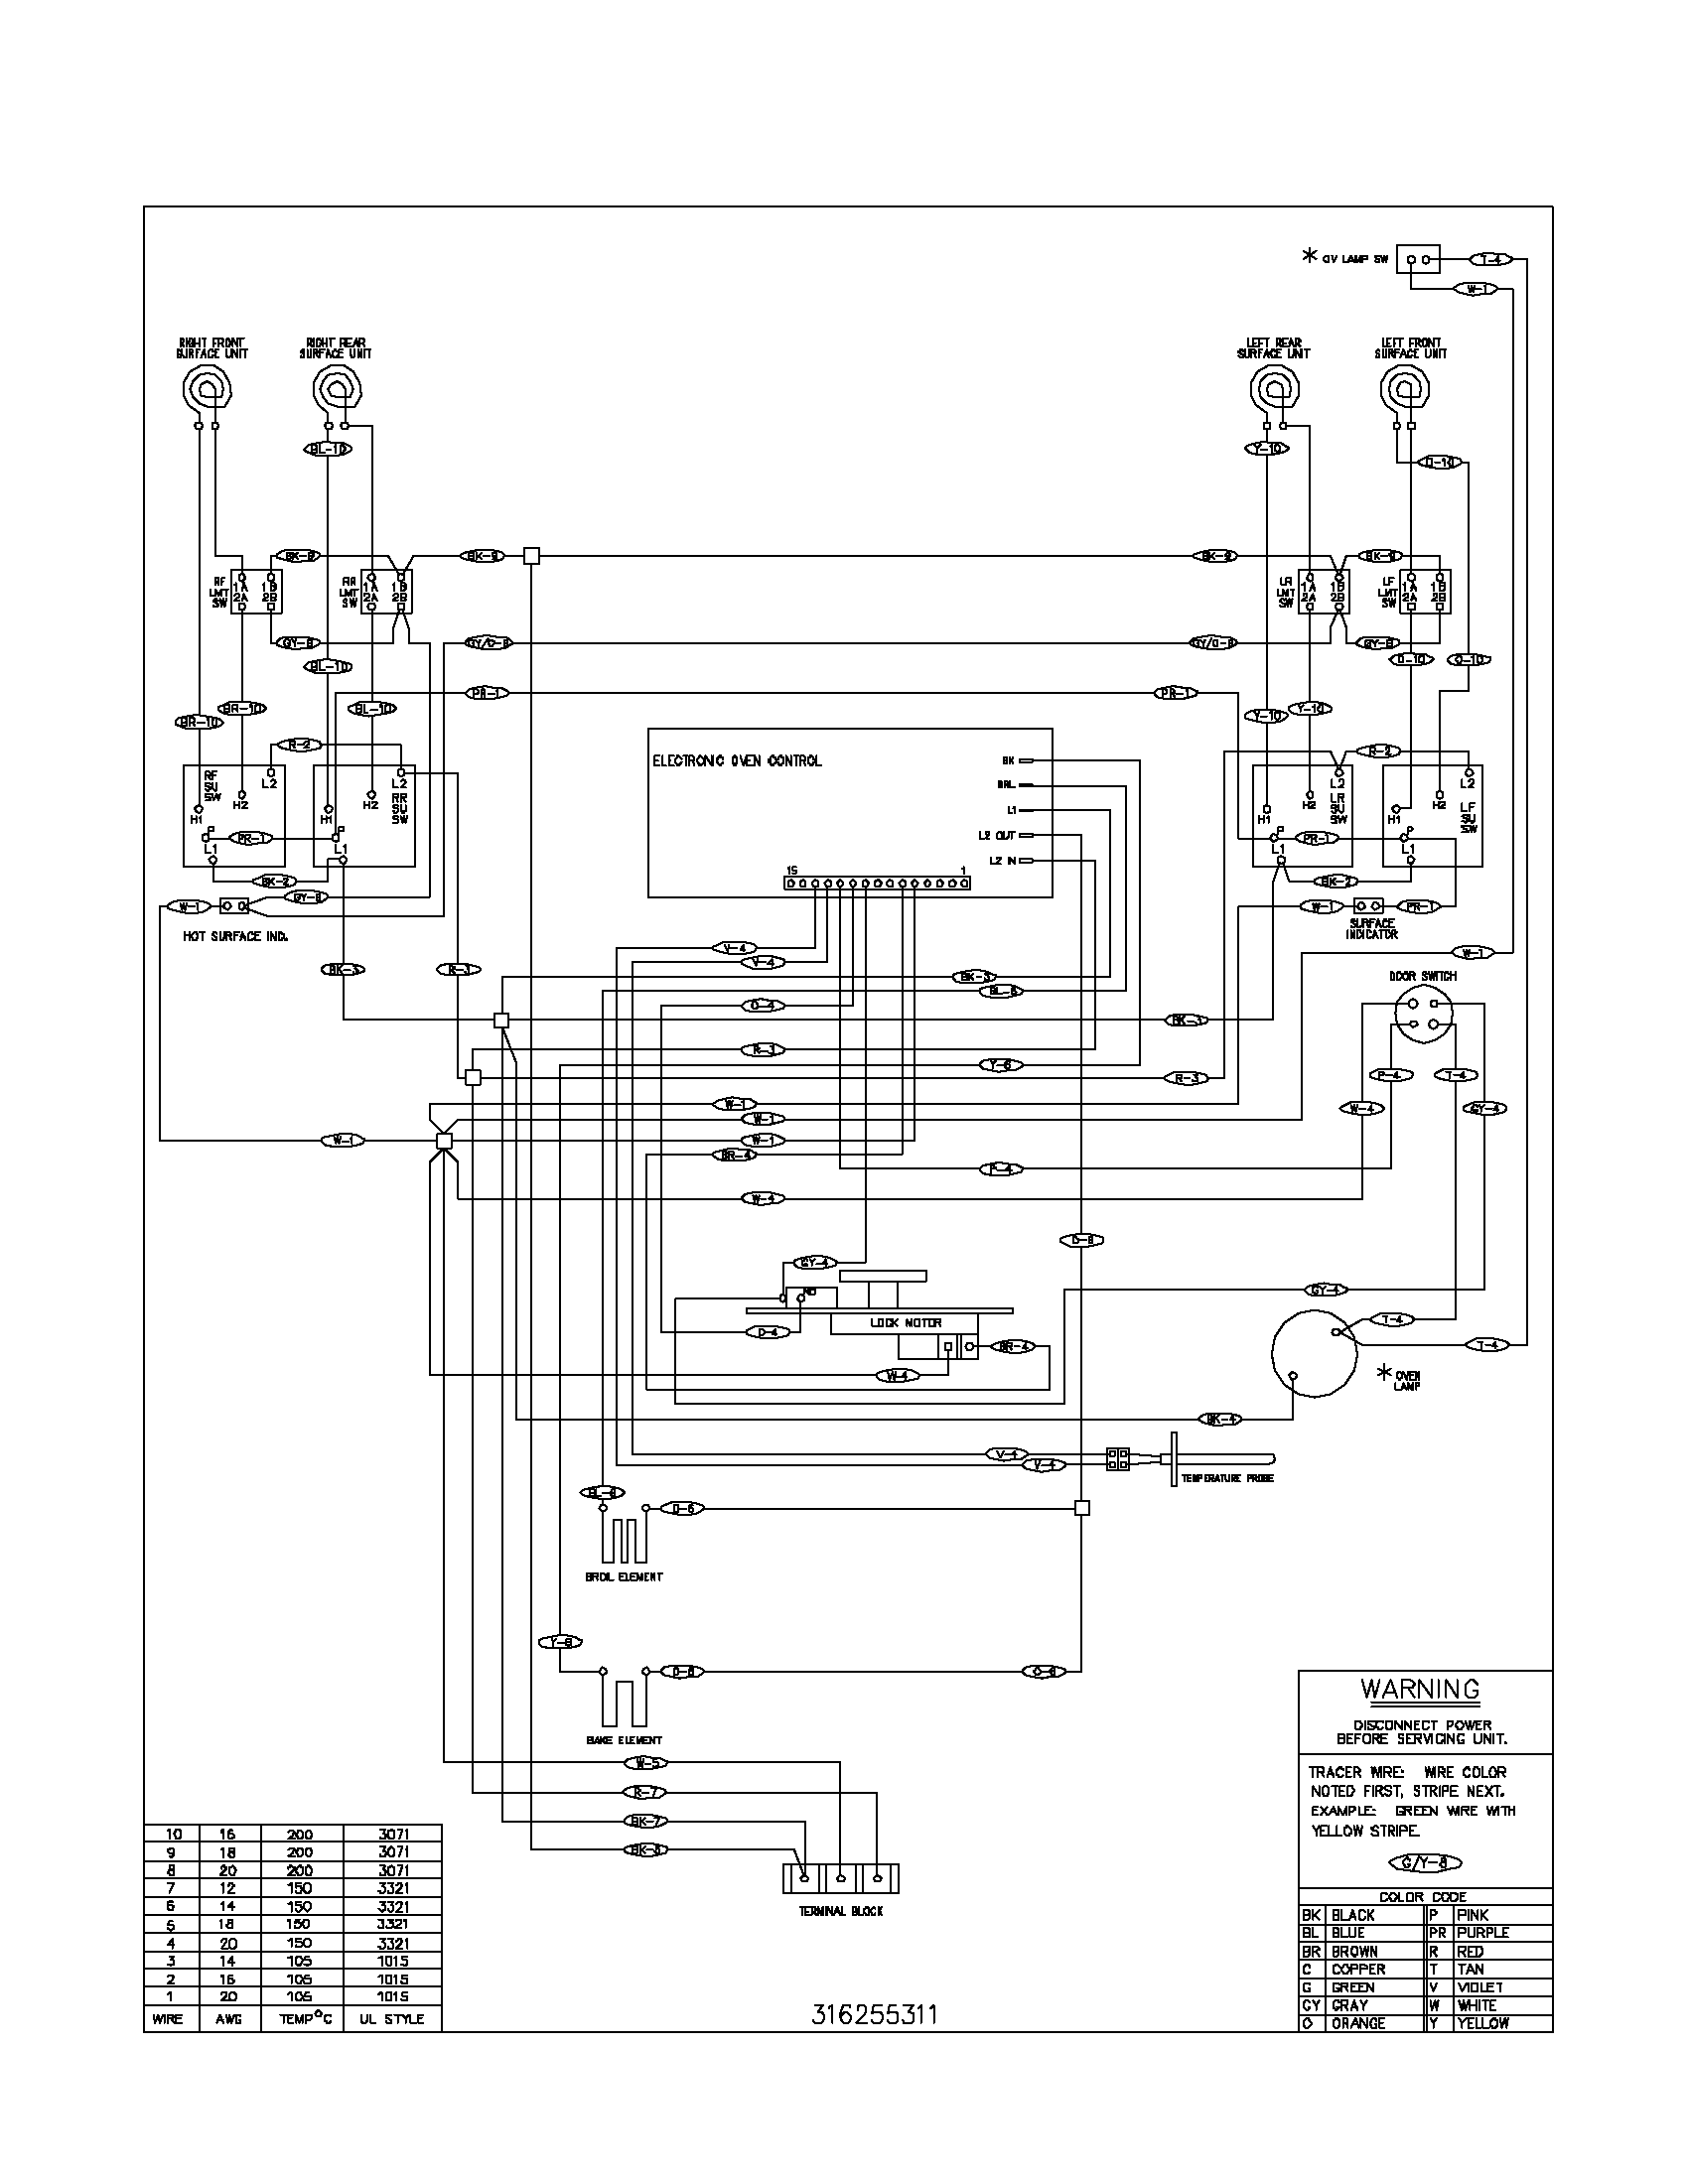 wiring diagram parts kenmore electric range wiring diagram kenmore wiring diagrams  at bayanpartner.co